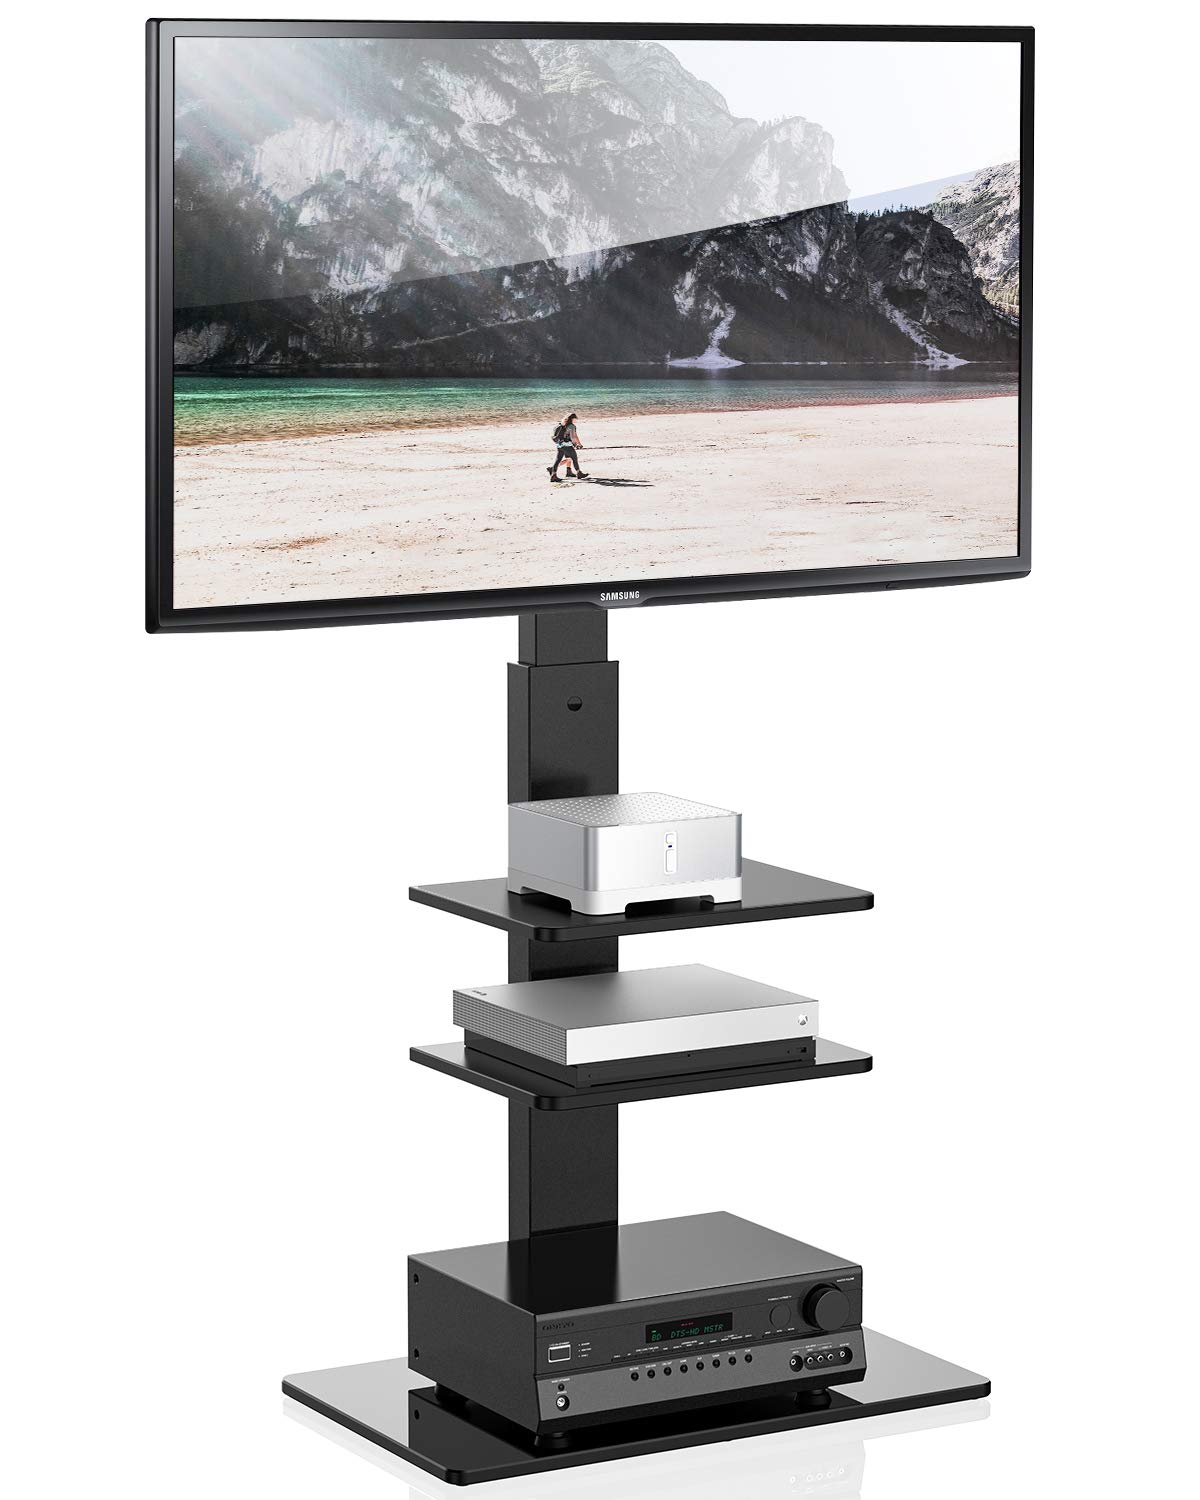 FITUEYES Universal TV Stand with Swivel Mount Height Adjustable for 32-65 Inch,TT307001MB,Two Kinds of Packaging Random Delivery by FITUEYES